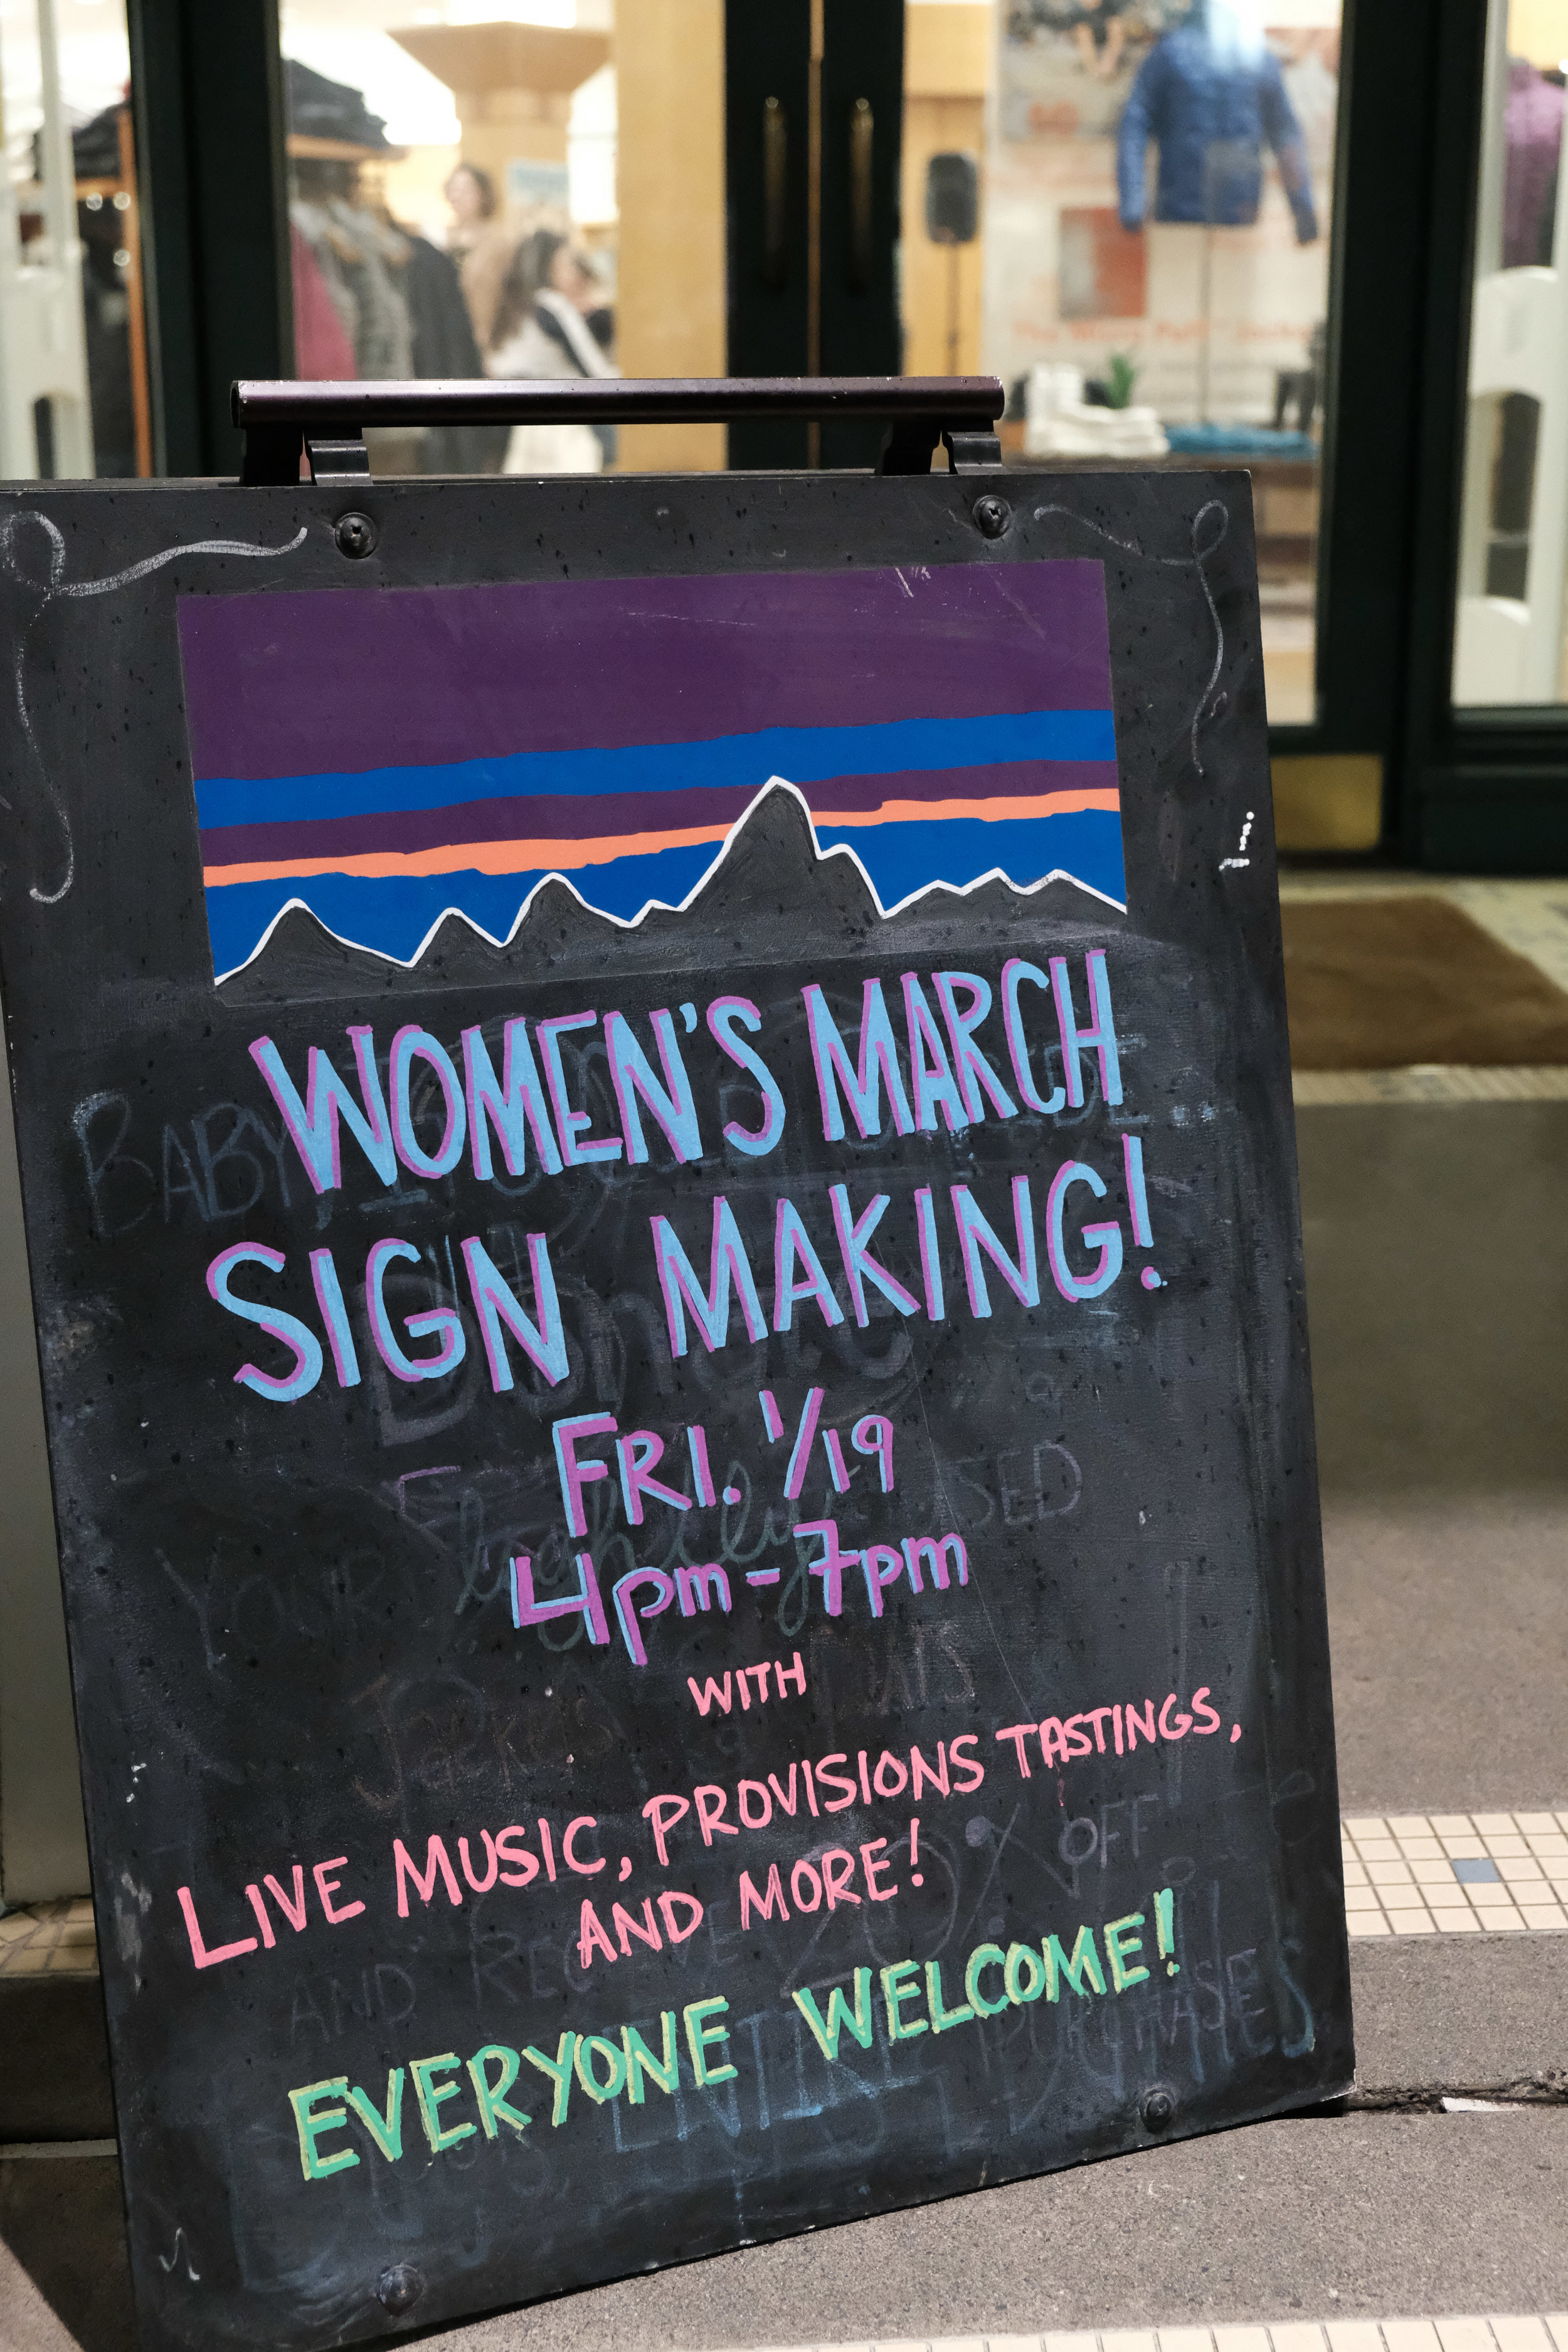 Patagonia's Women's March Seattle sign-making event, 19 January 2018.